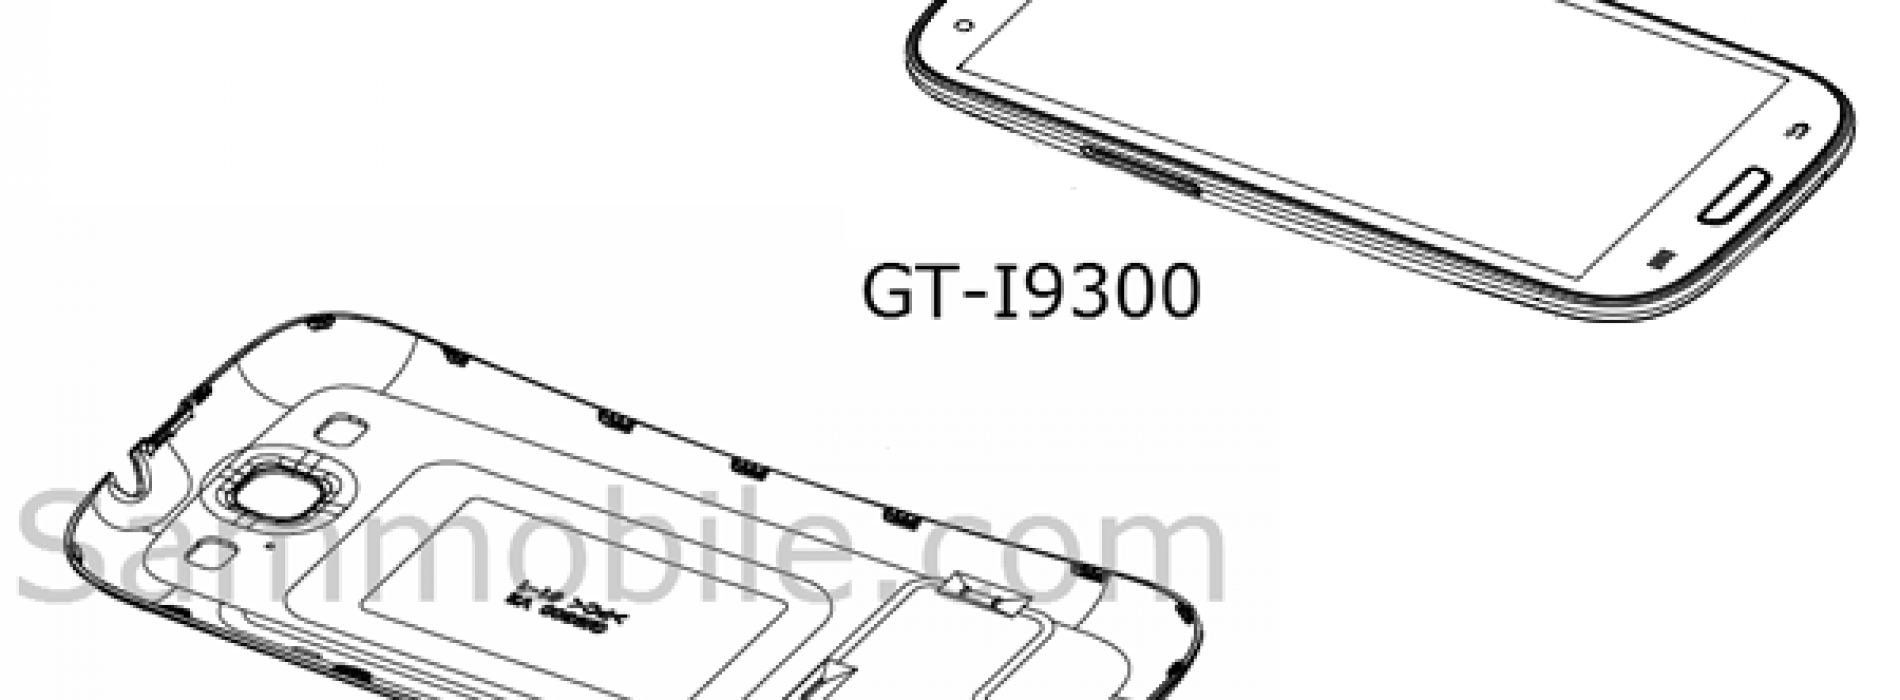 Surprise! Latest round of Galaxy S III details differ from previous rumors